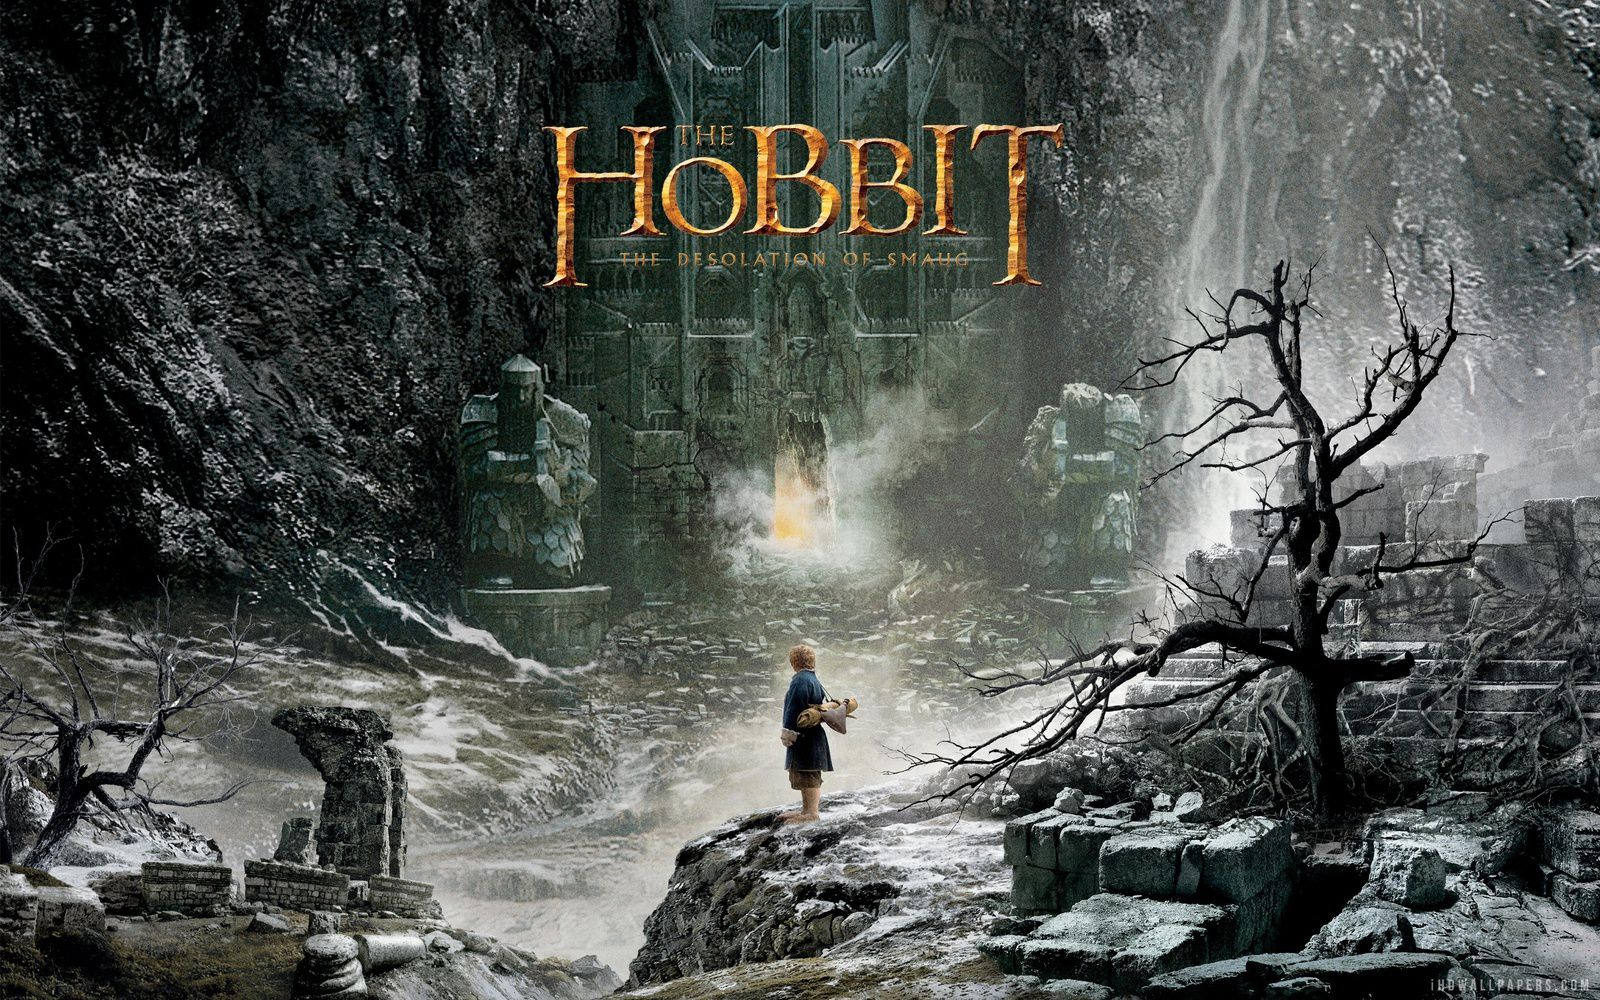 Le Hobbit 2 - La désolation de Smaug